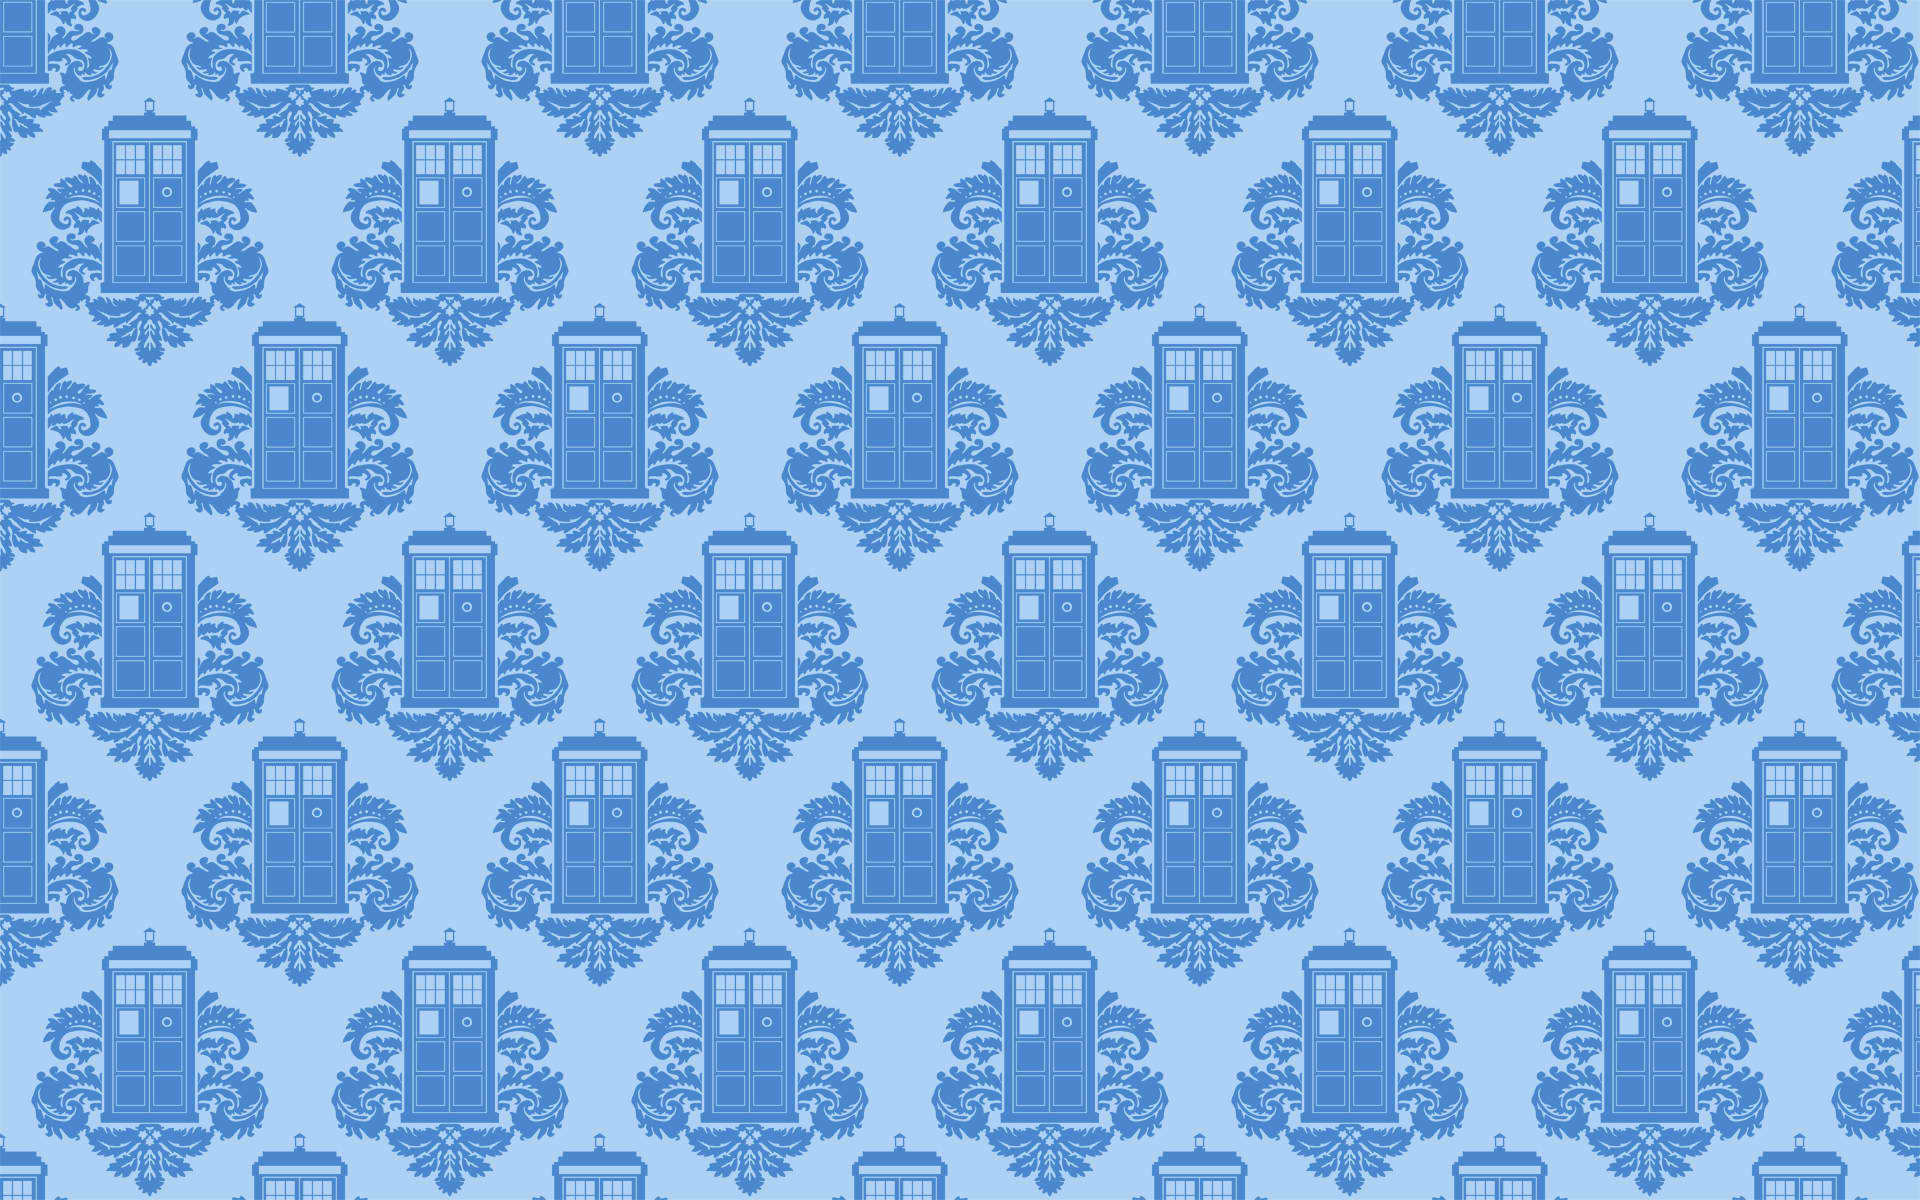 TARDIS Computer Wallpapers, Desktop Backgrounds 1920x1200 Id: 201402